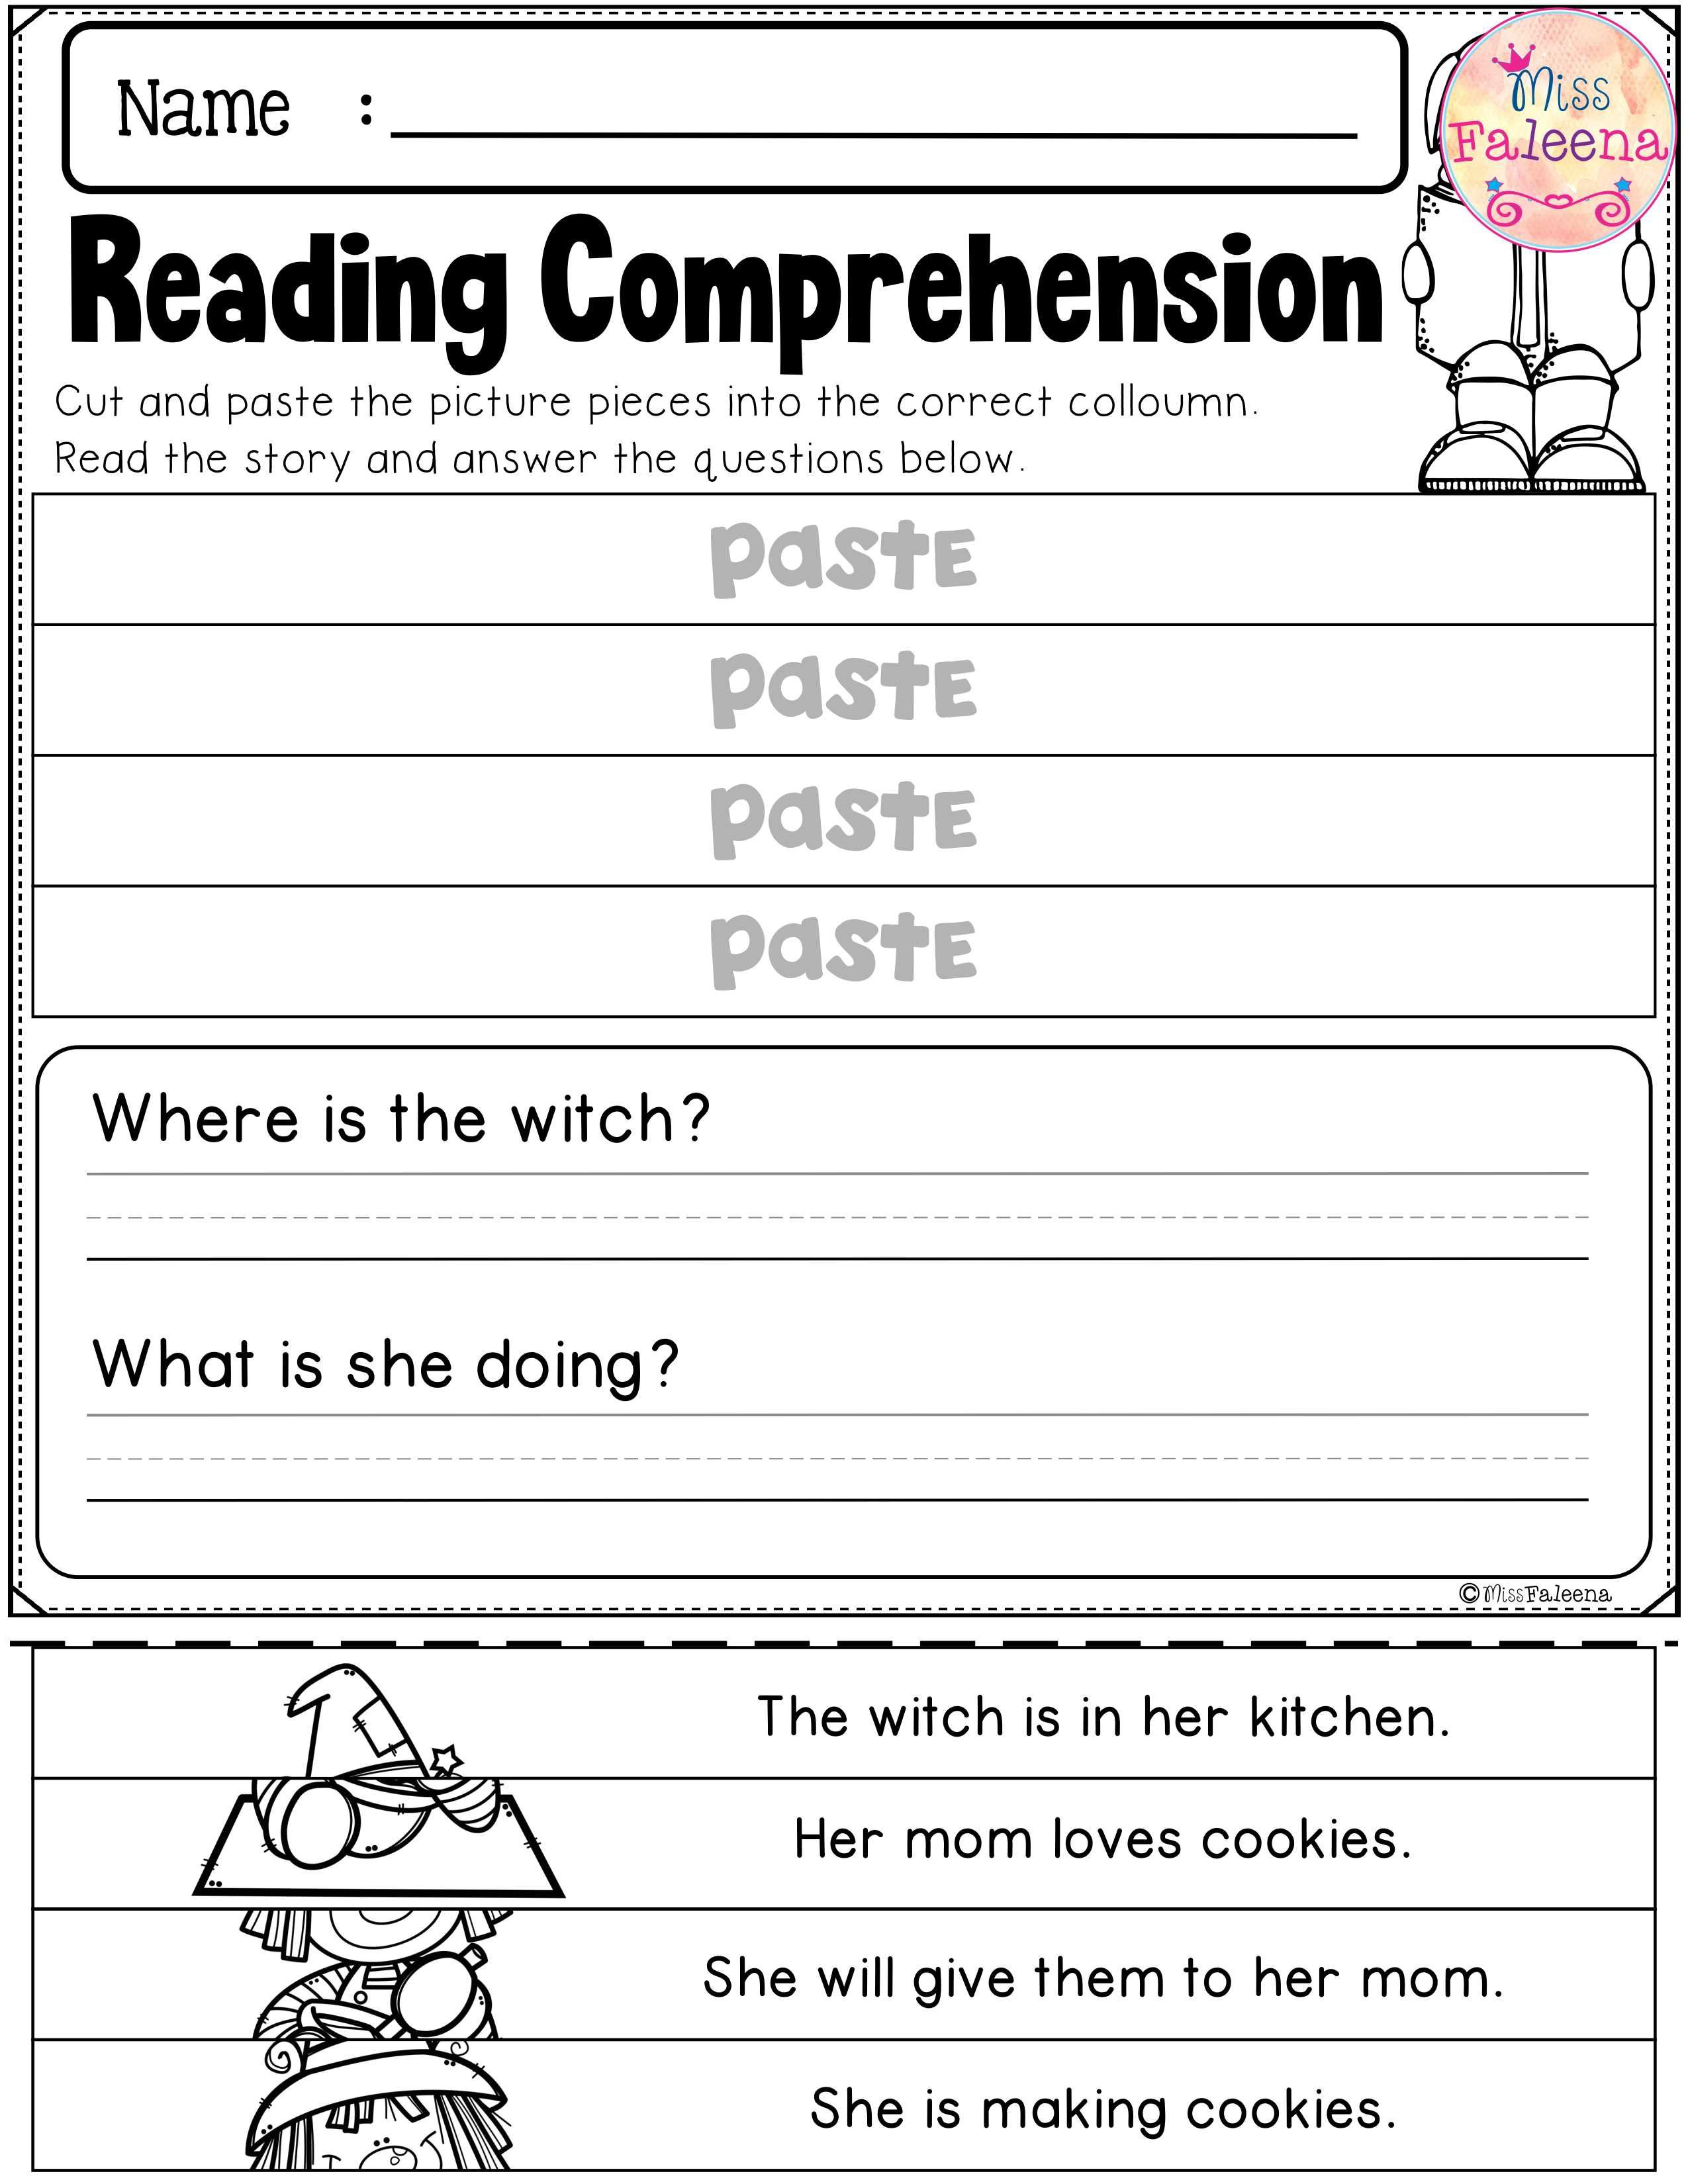 Fall Reading Comprehension Puzzles Fall Reading Comprehension Reading Comprehension Reading Comprehension Worksheets [ 3300 x 2550 Pixel ]